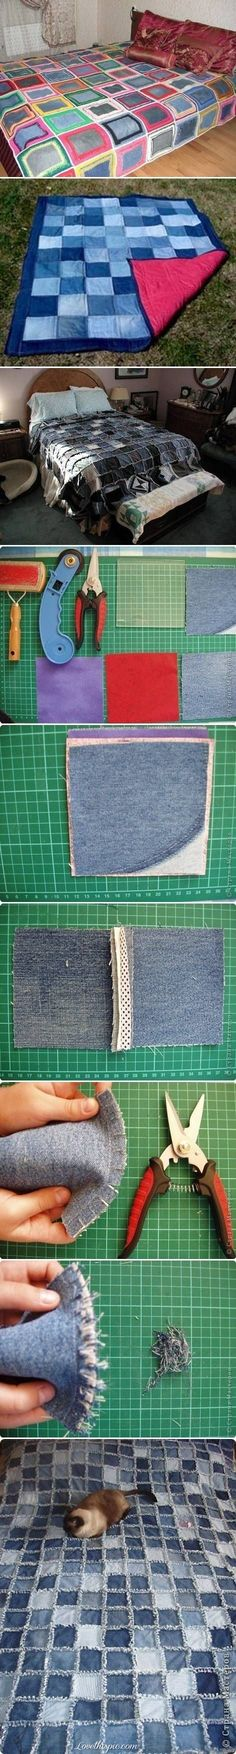 DIY Denim Blanket Pictures, Photos, and Images for Facebook, Tumblr, Pinterest, and Twitter